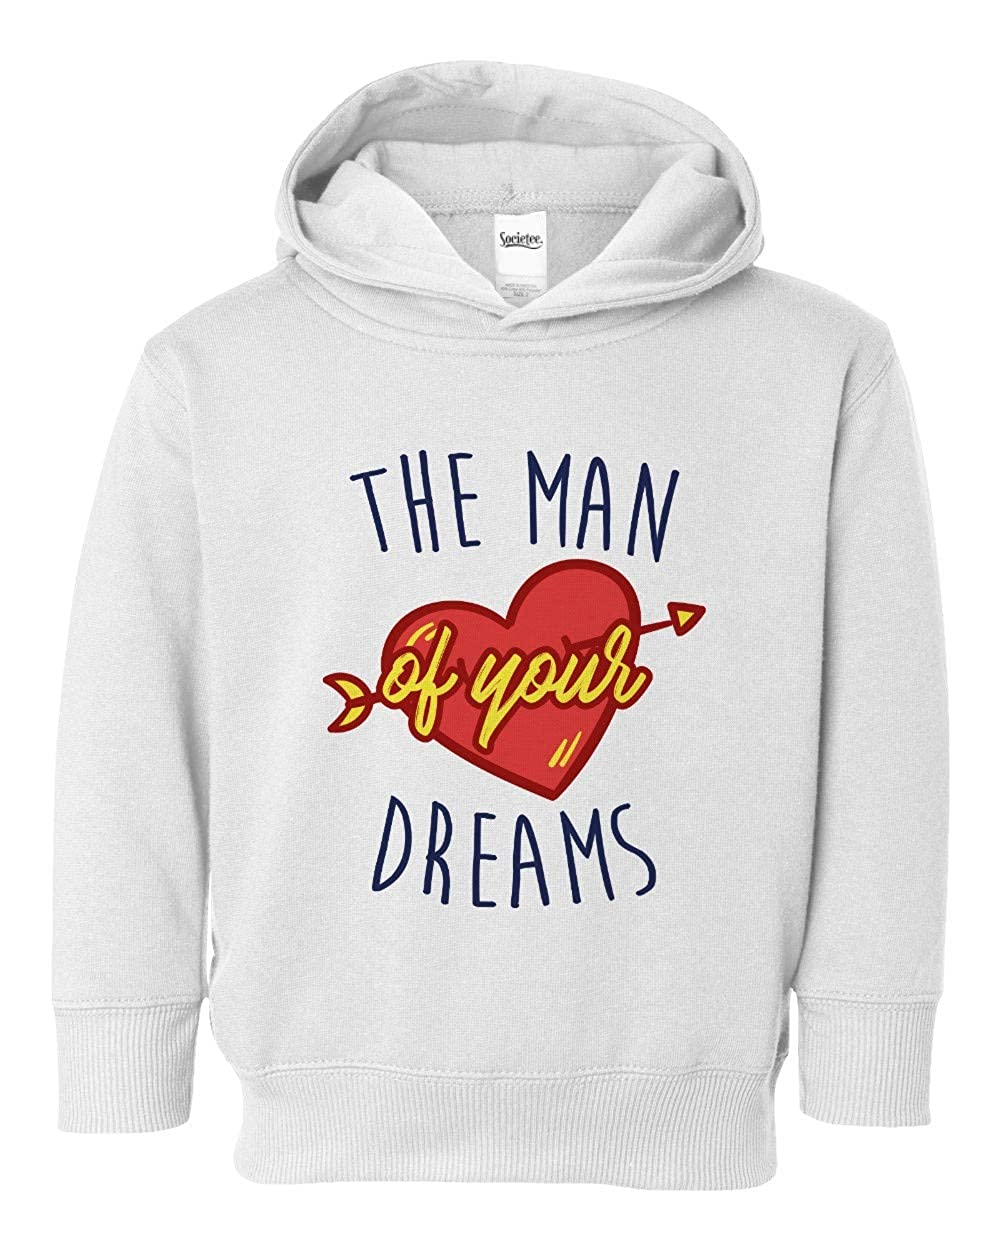 Societee The Man of Your Dreams Girls Boys Toddler Hooded Sweatshirt